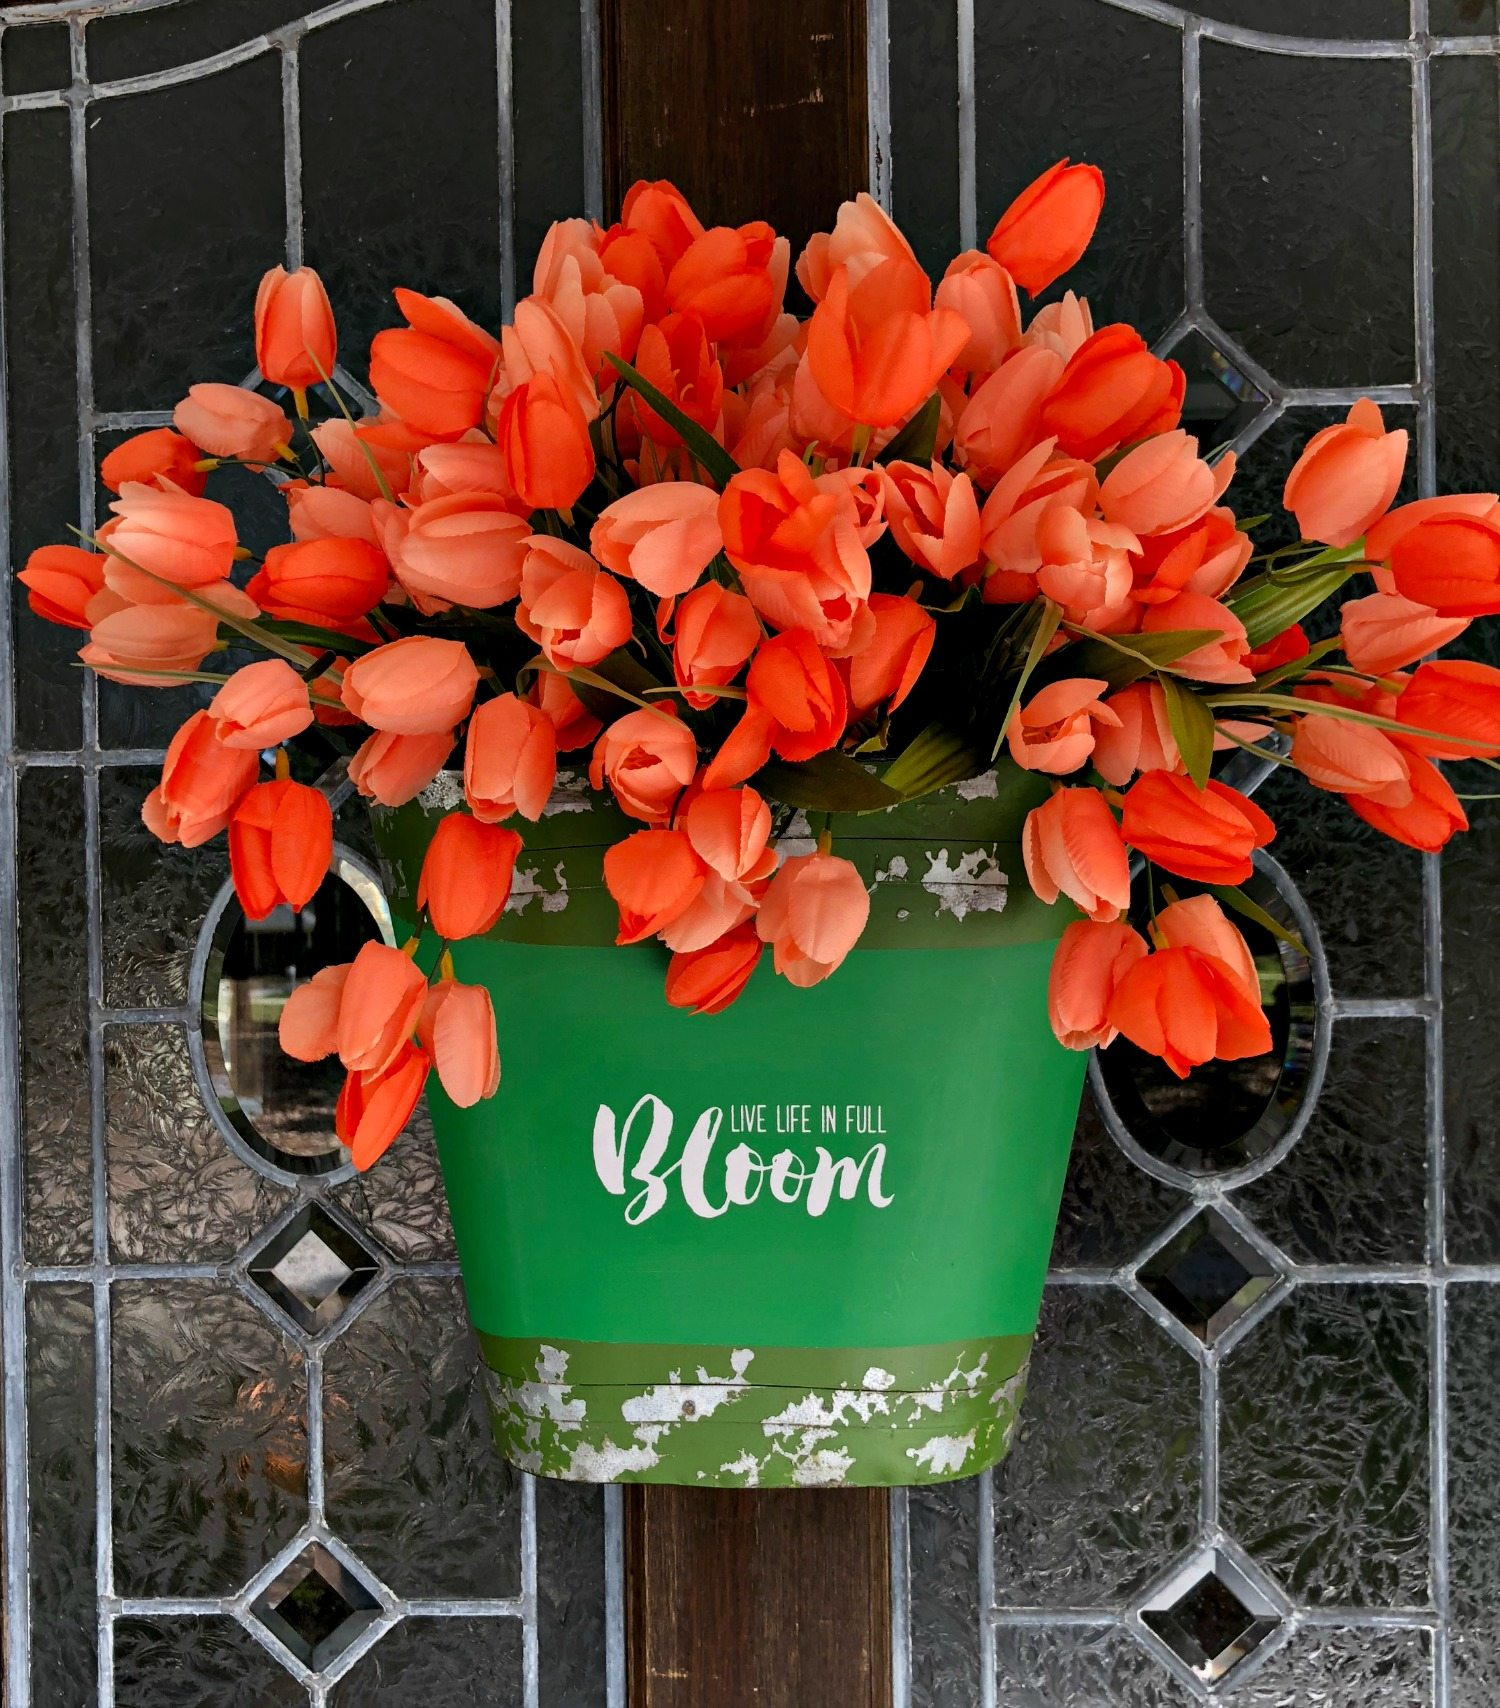 Bucket of tulips for the door